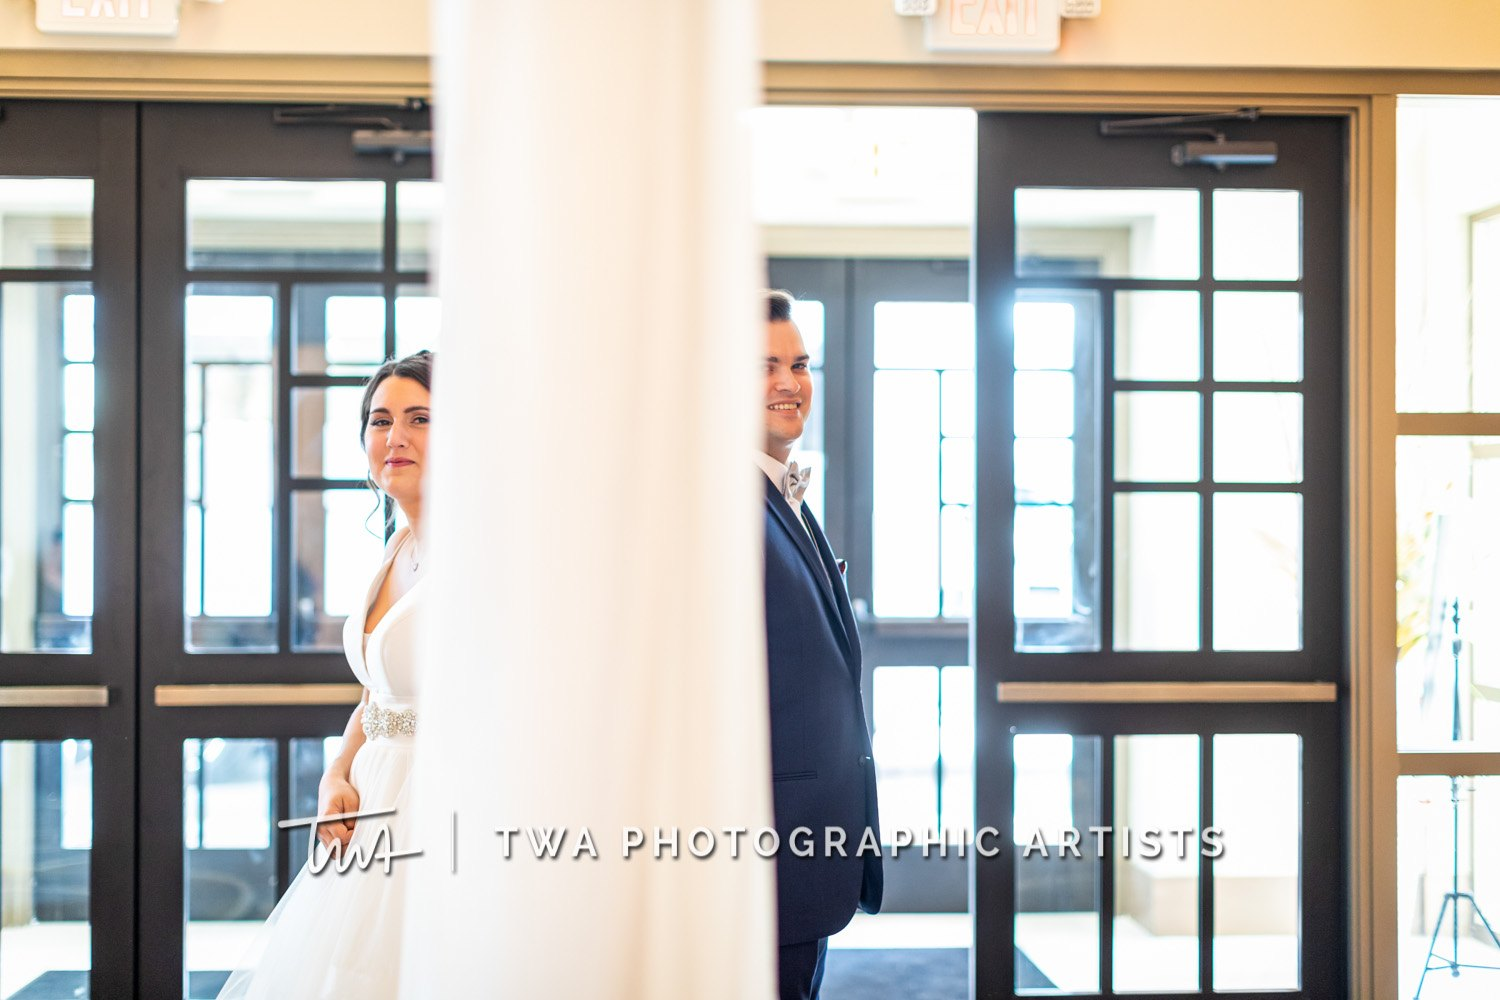 Chicago-Wedding-Photographer-TWA-Photographic-Artists-Avante-Banquets_Zickert_Quaas_MD_SG-0176